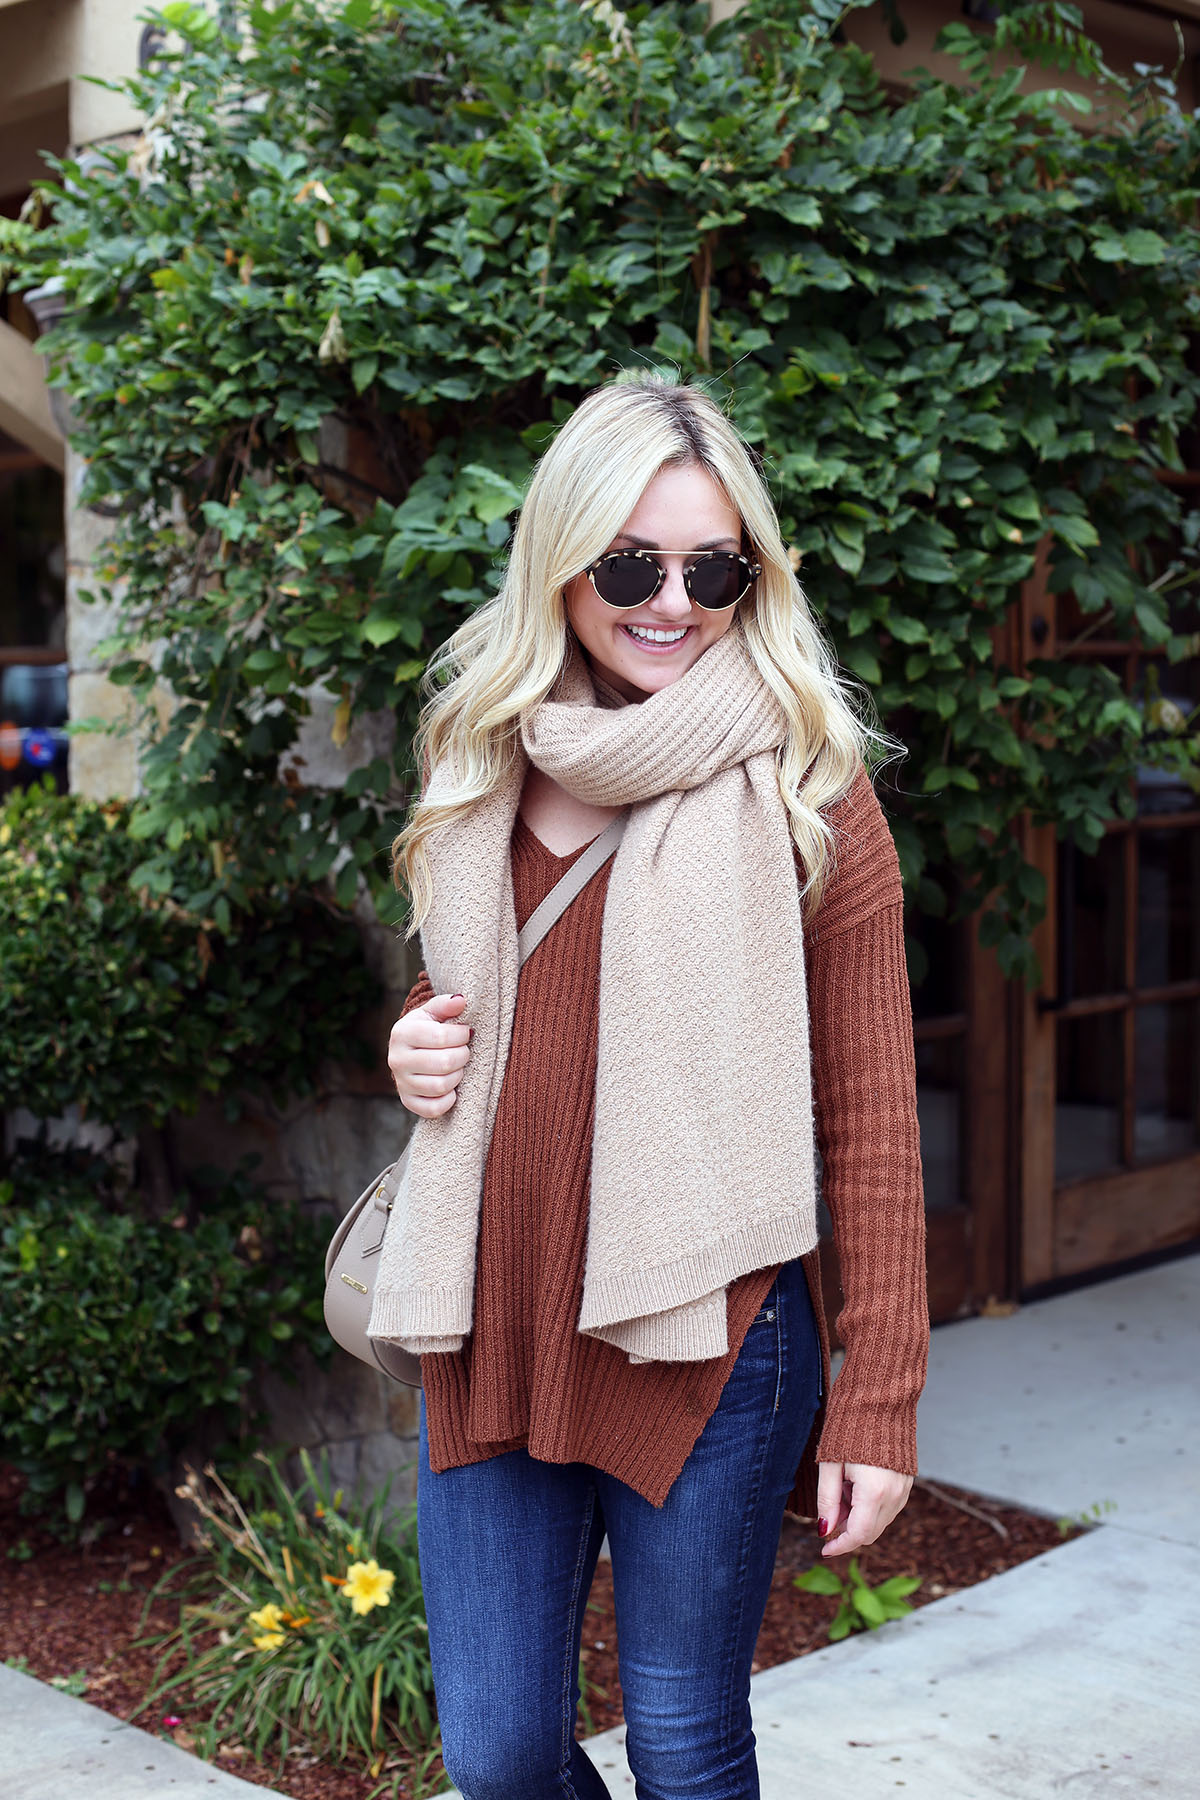 Bows & Sequins wearing a cashmere blanket scarf in Napa.